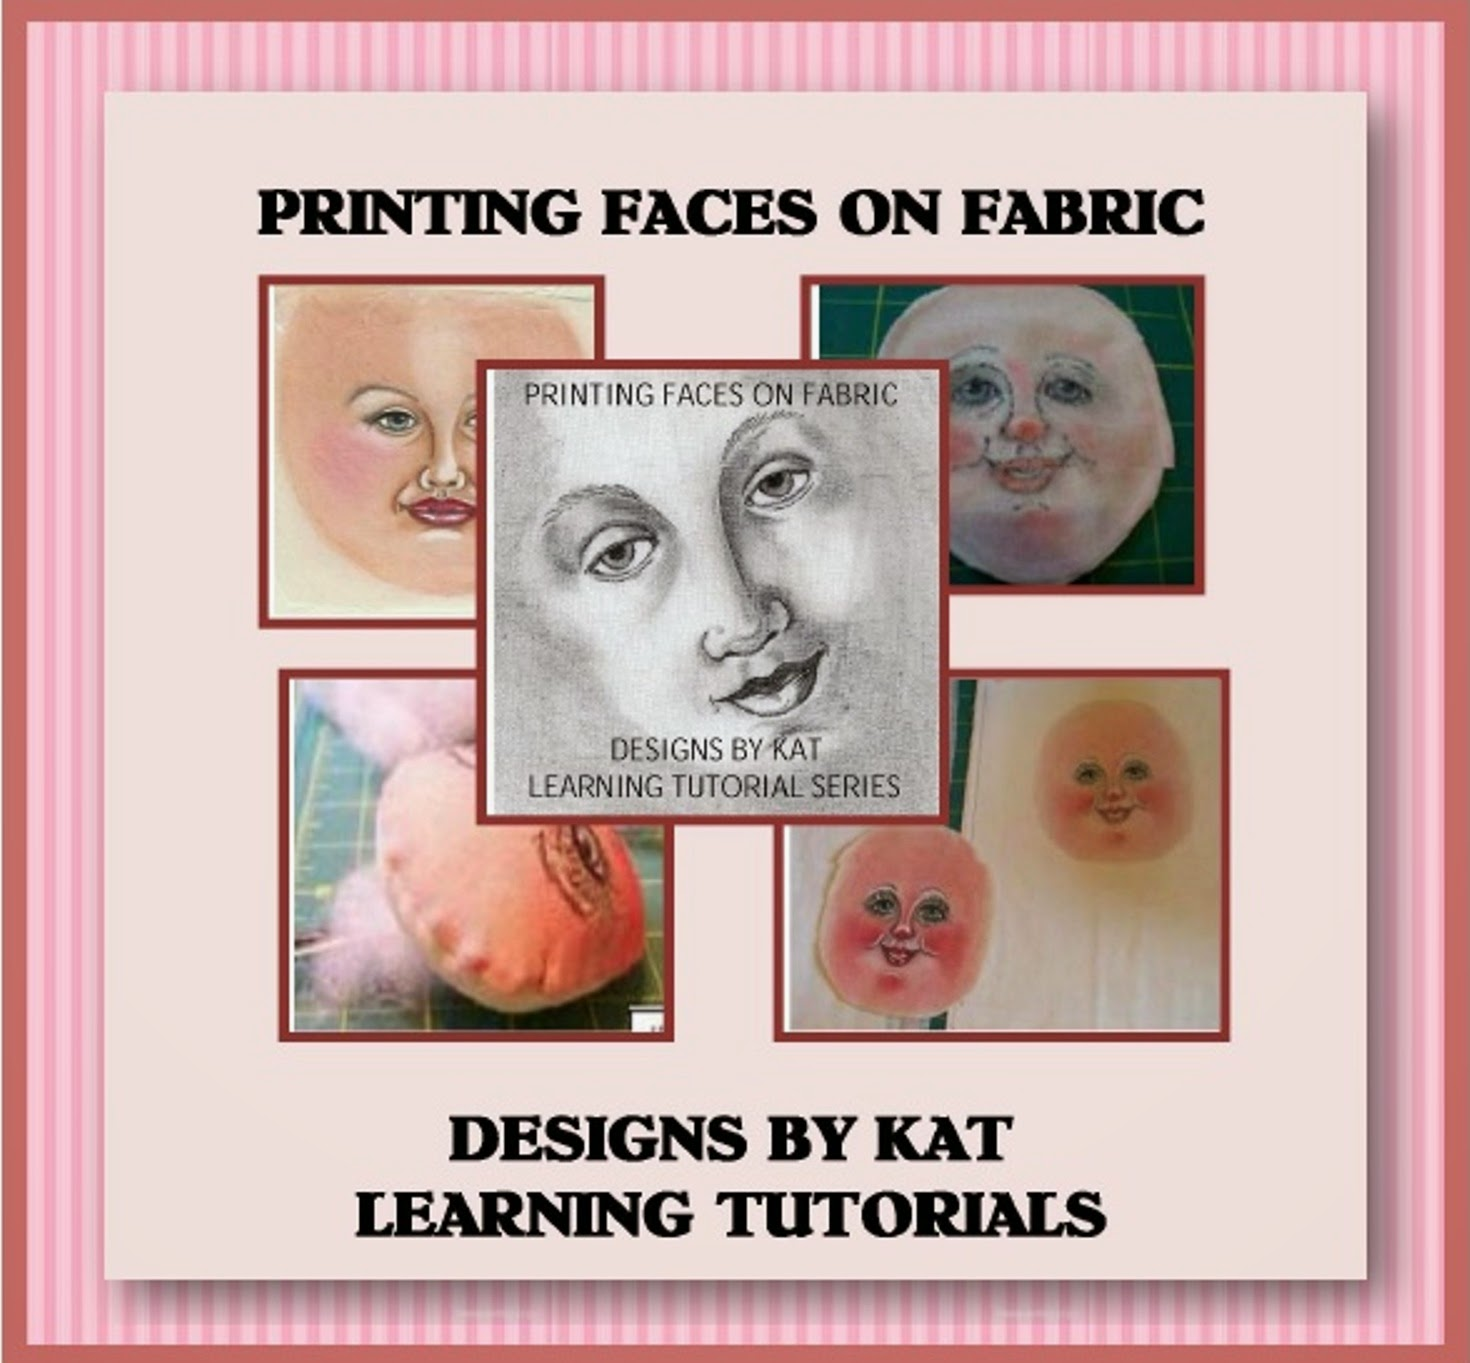 Printing Faces On Fabric Workshop